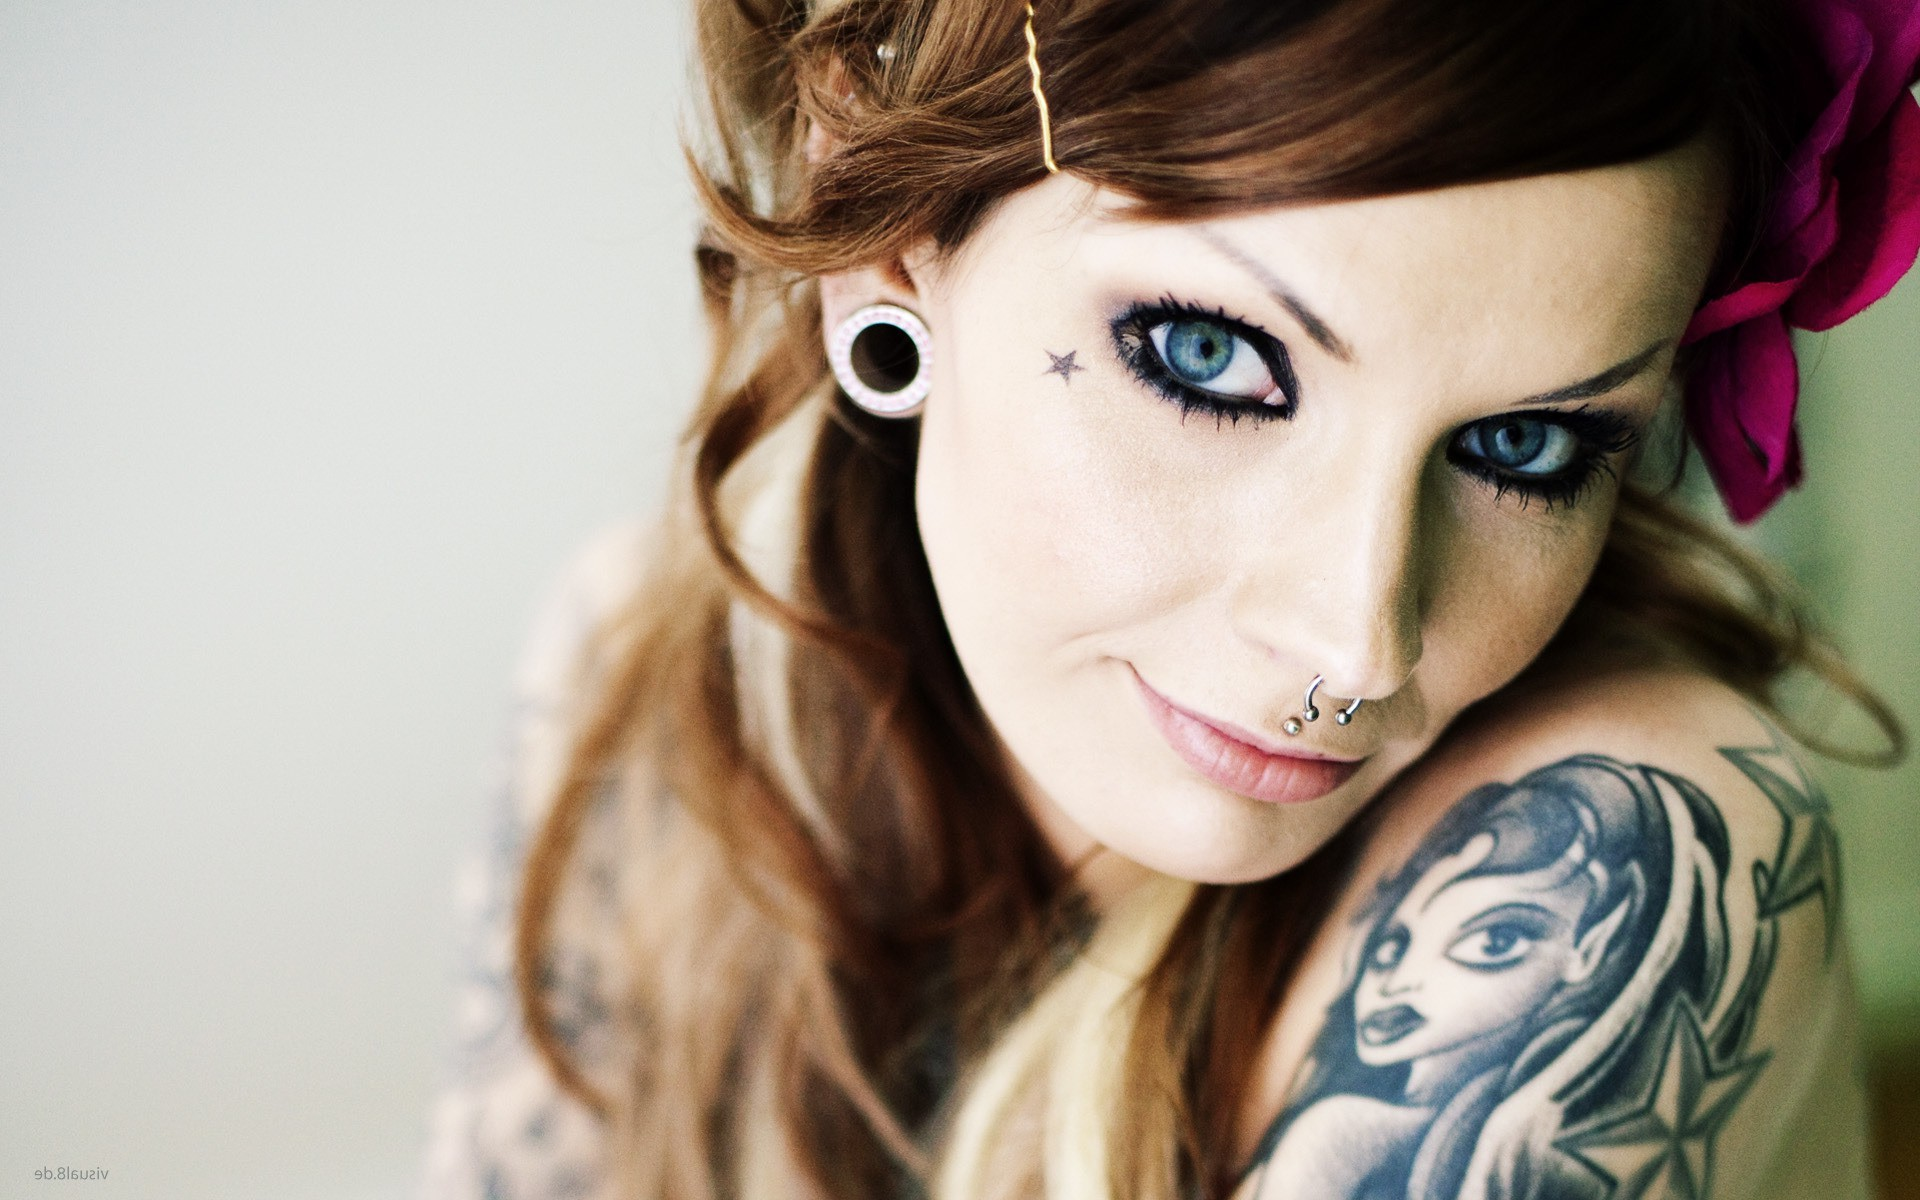 Fantasy Wallpaper Little Girl Women Tattoo Piercing Face Portrait Model Wallpapers